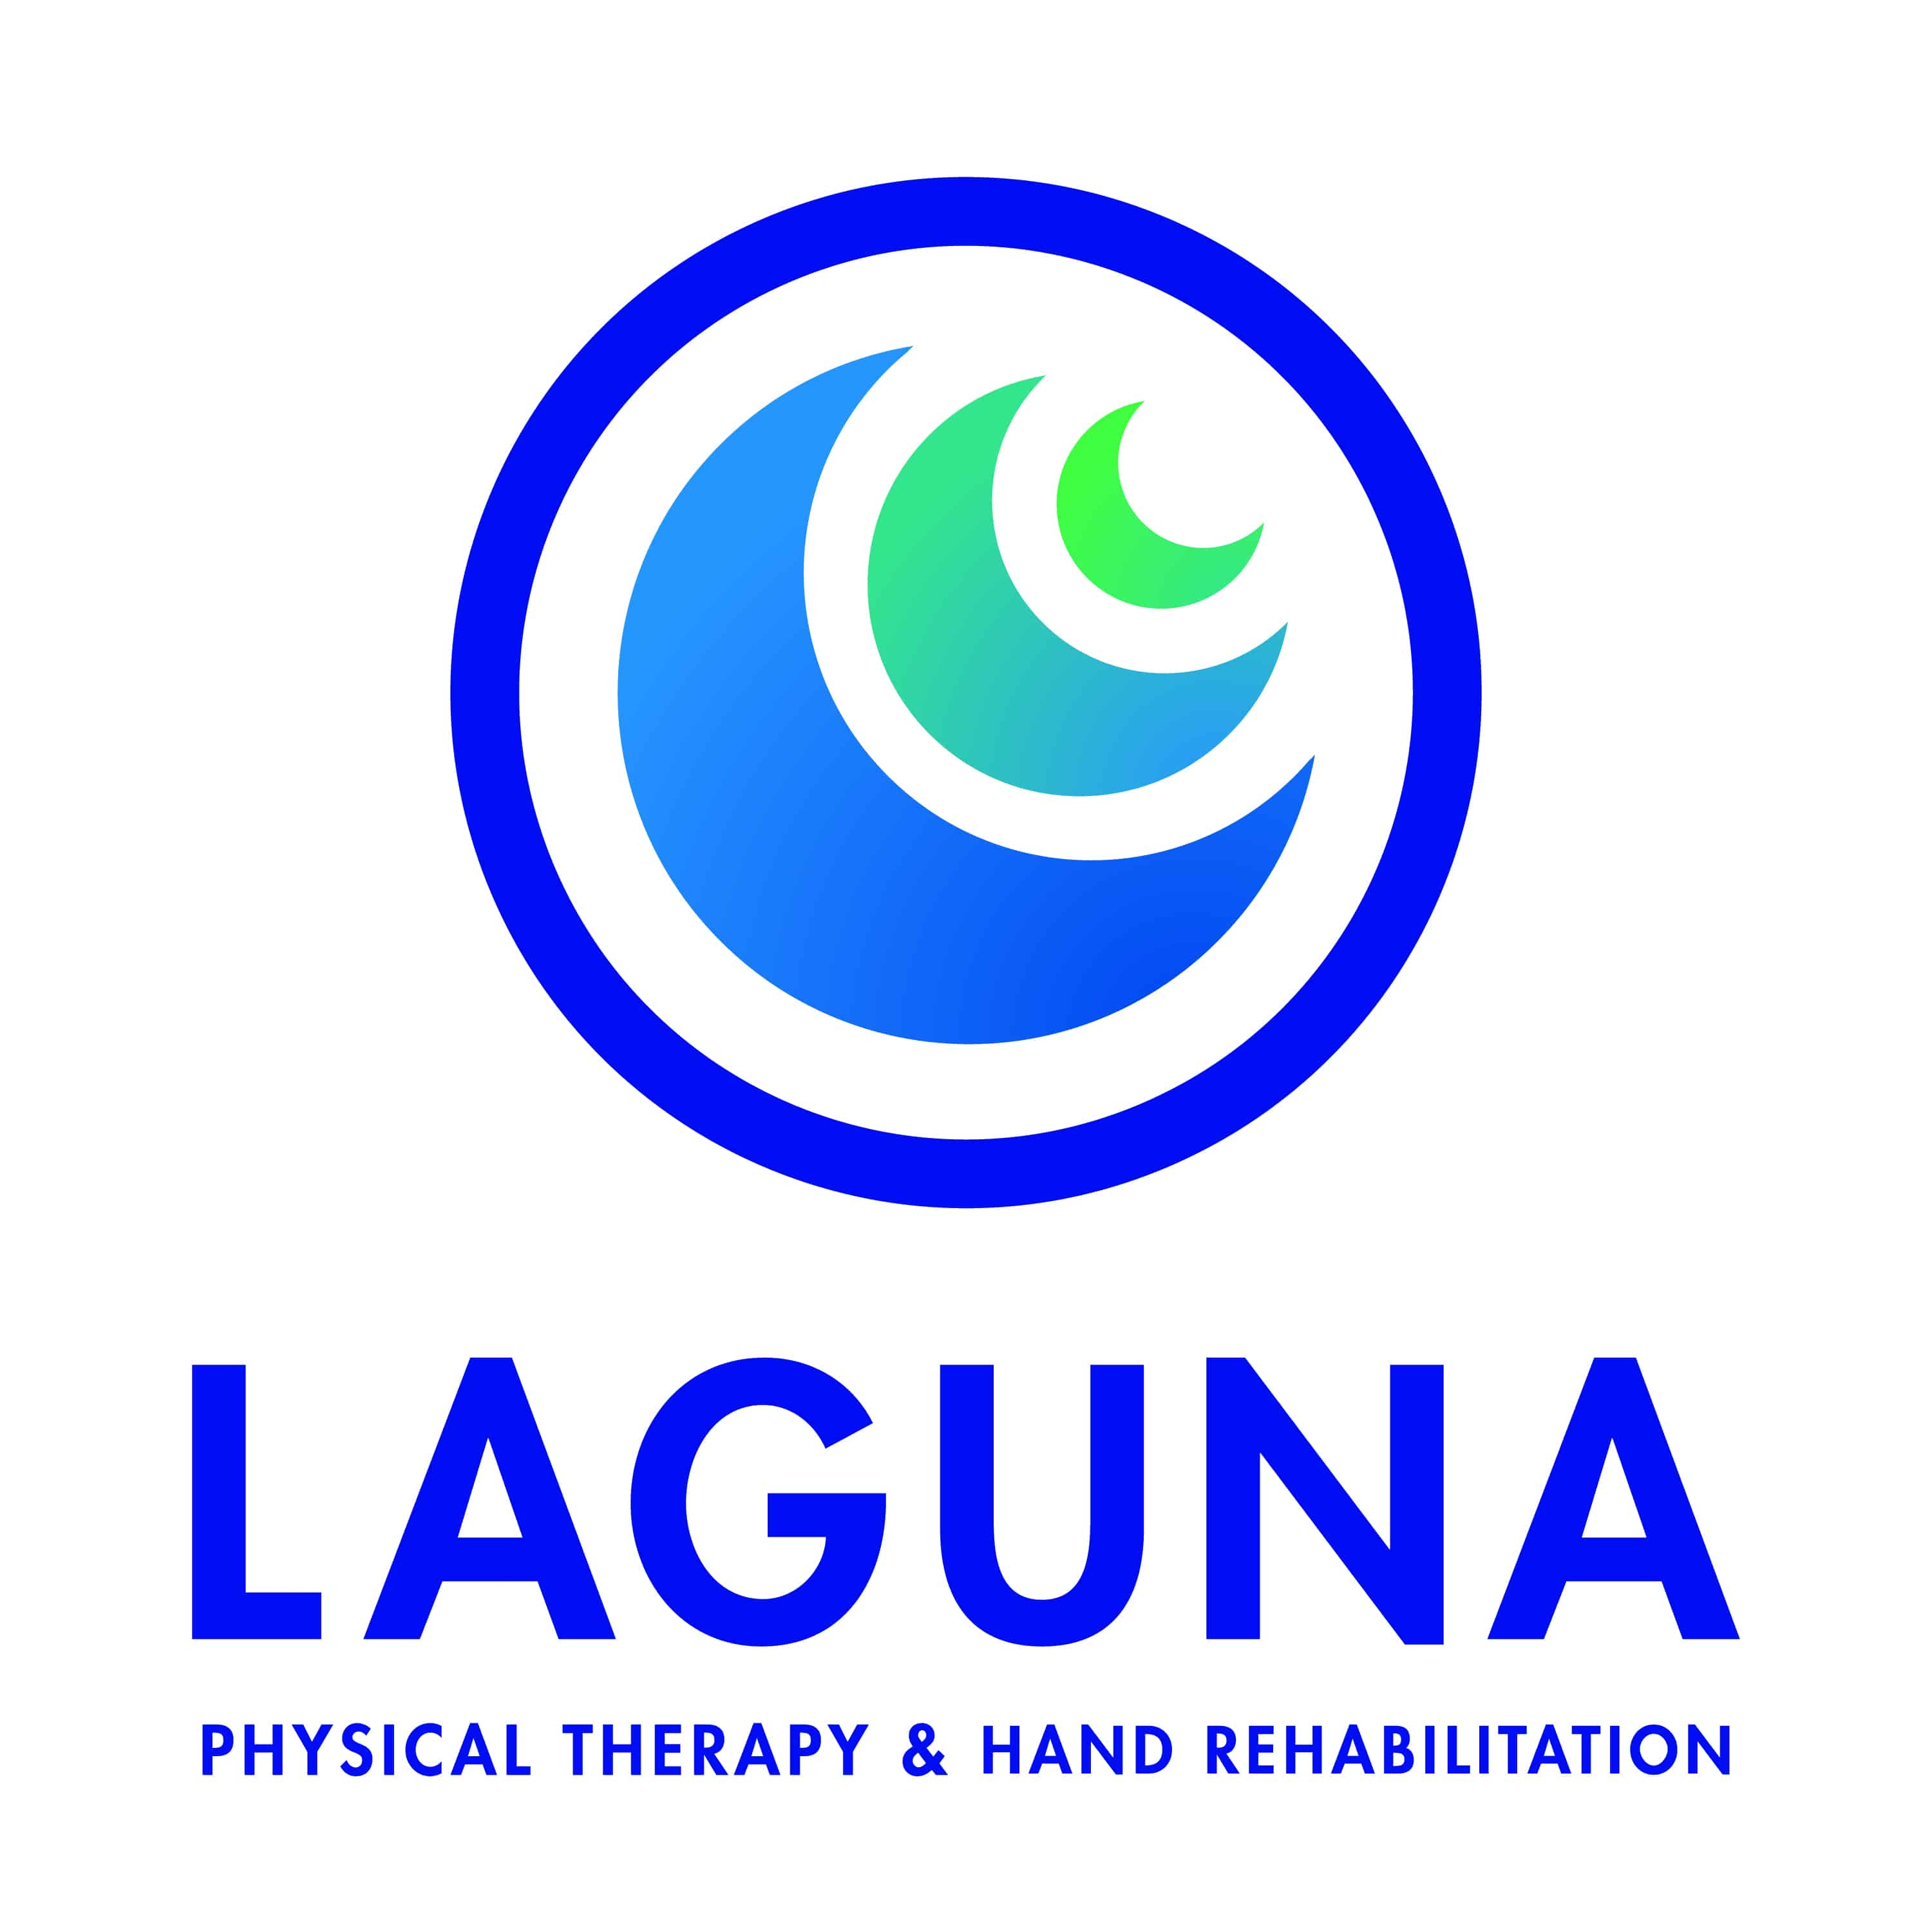 Laguna Physical Therapy & Hand Rehabilitation